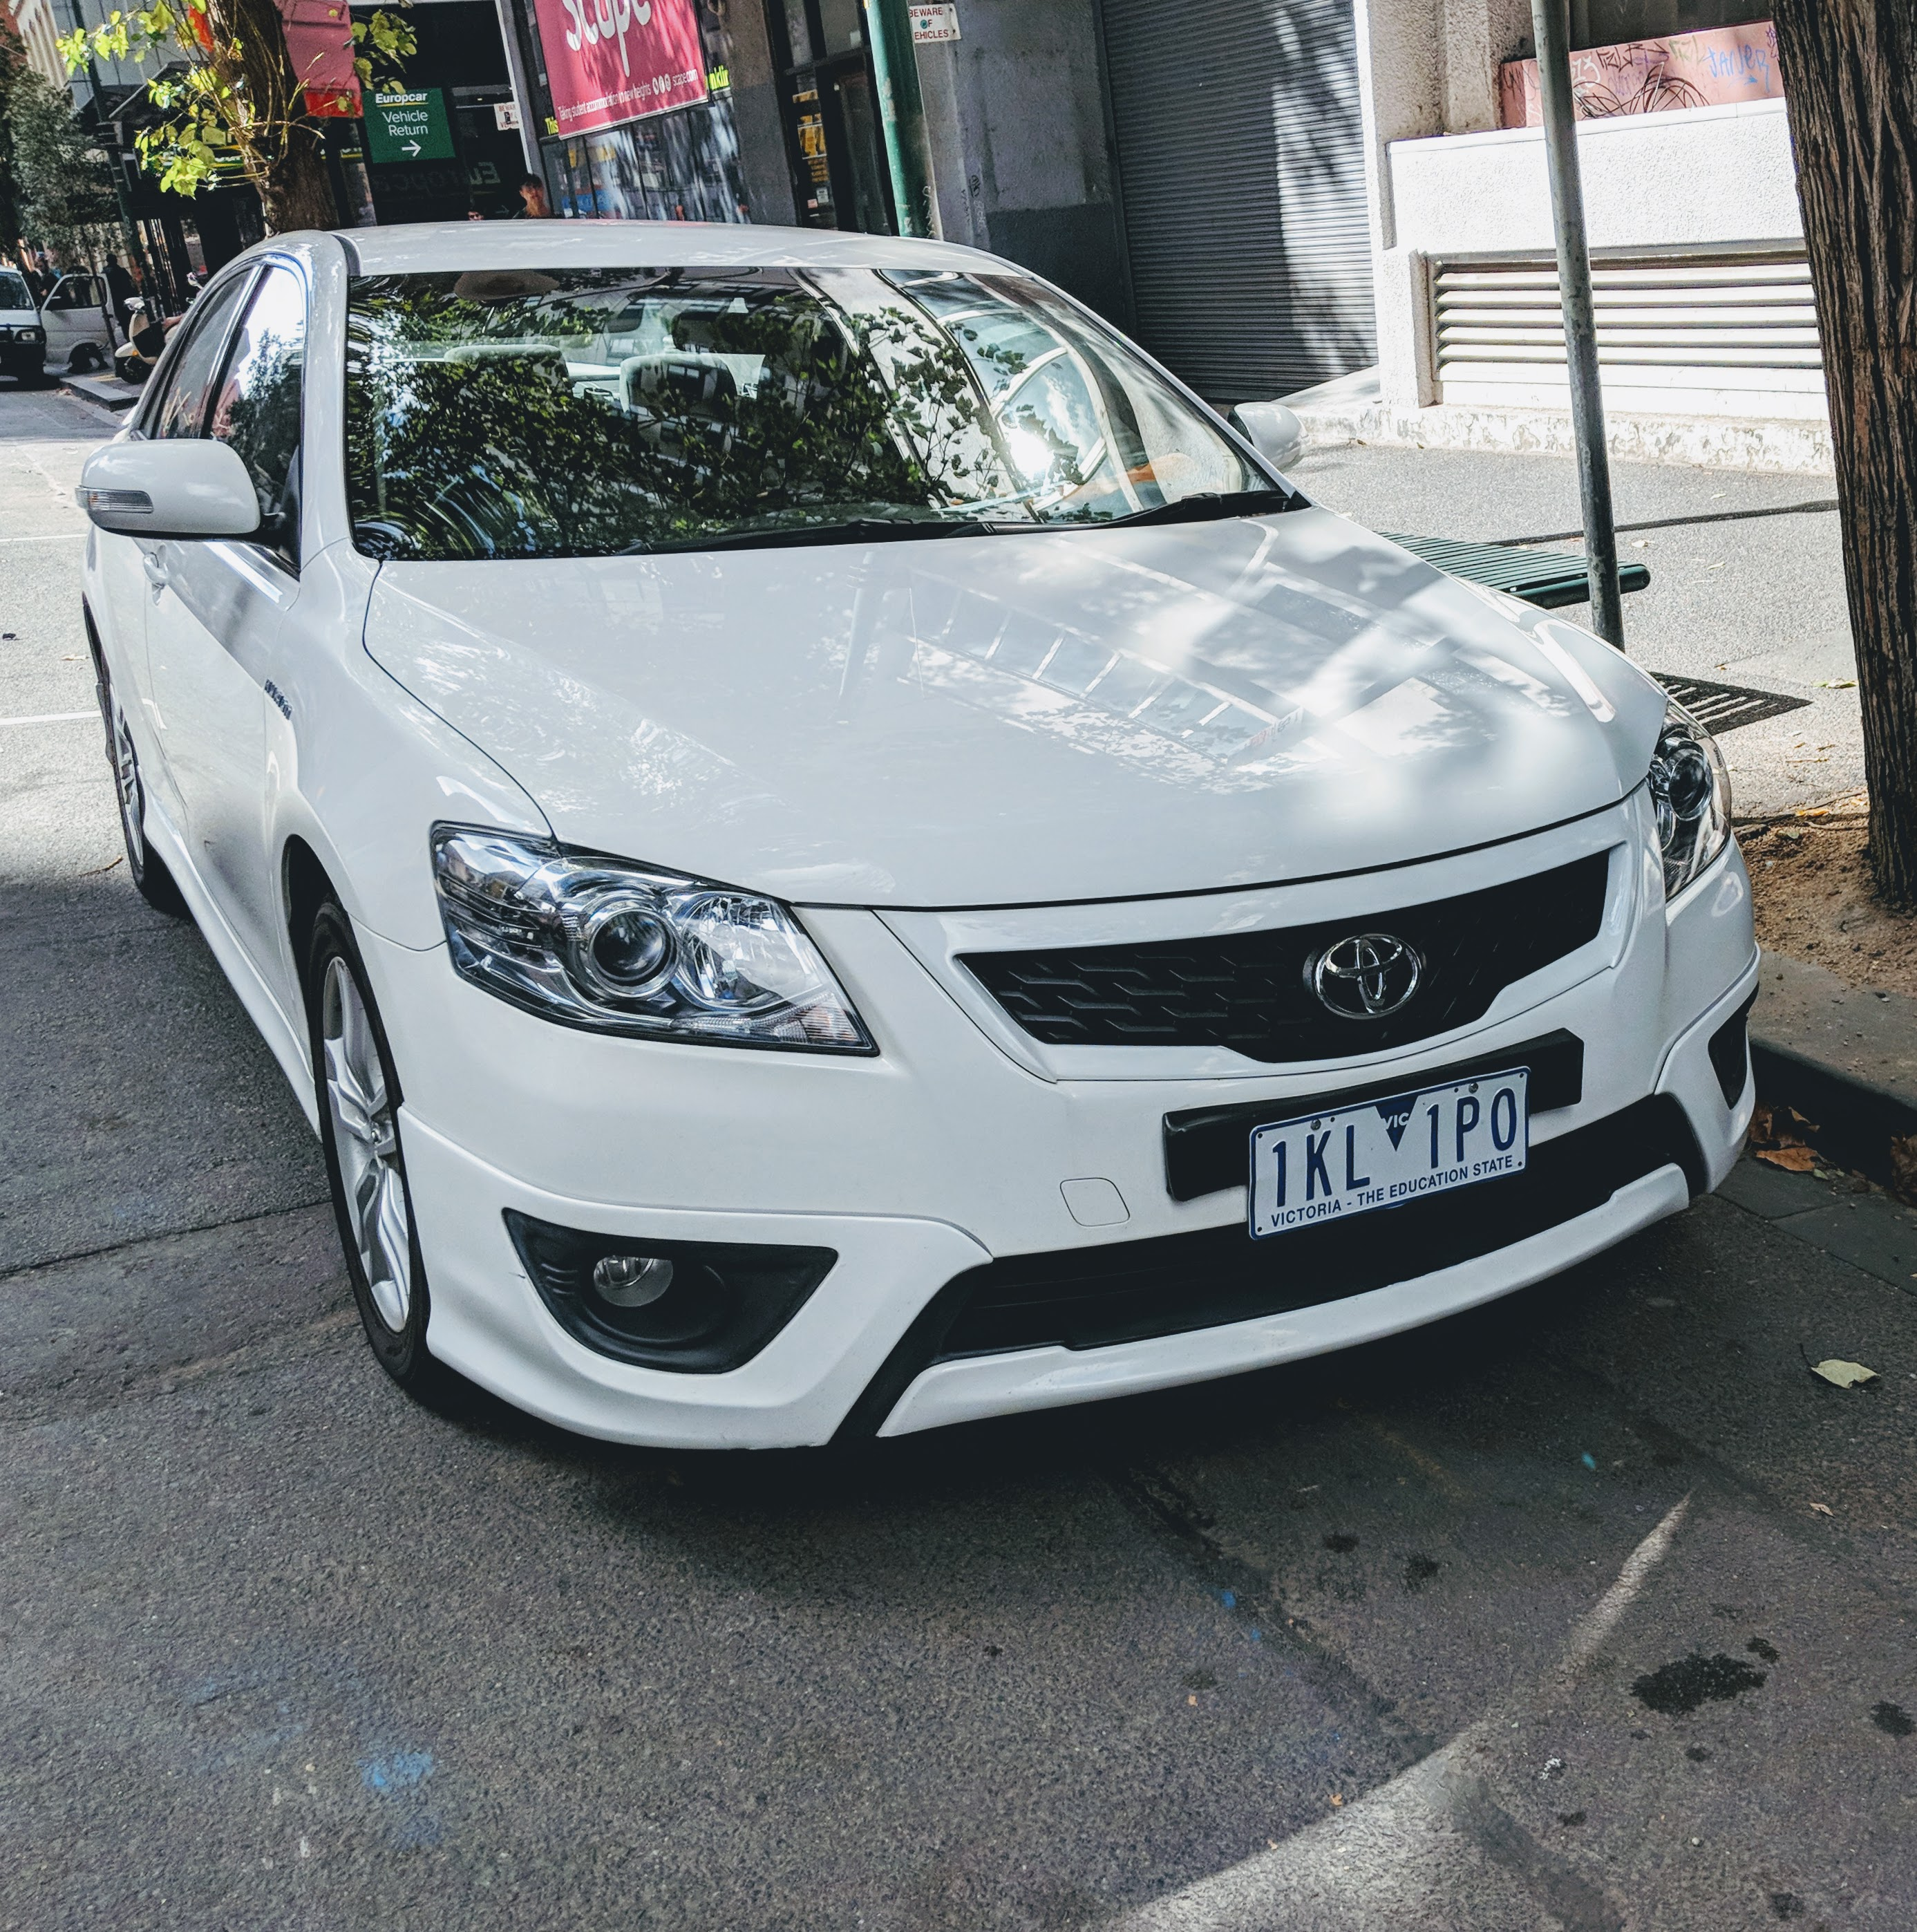 Picture of Jairus' 2011 Toyota Aurion